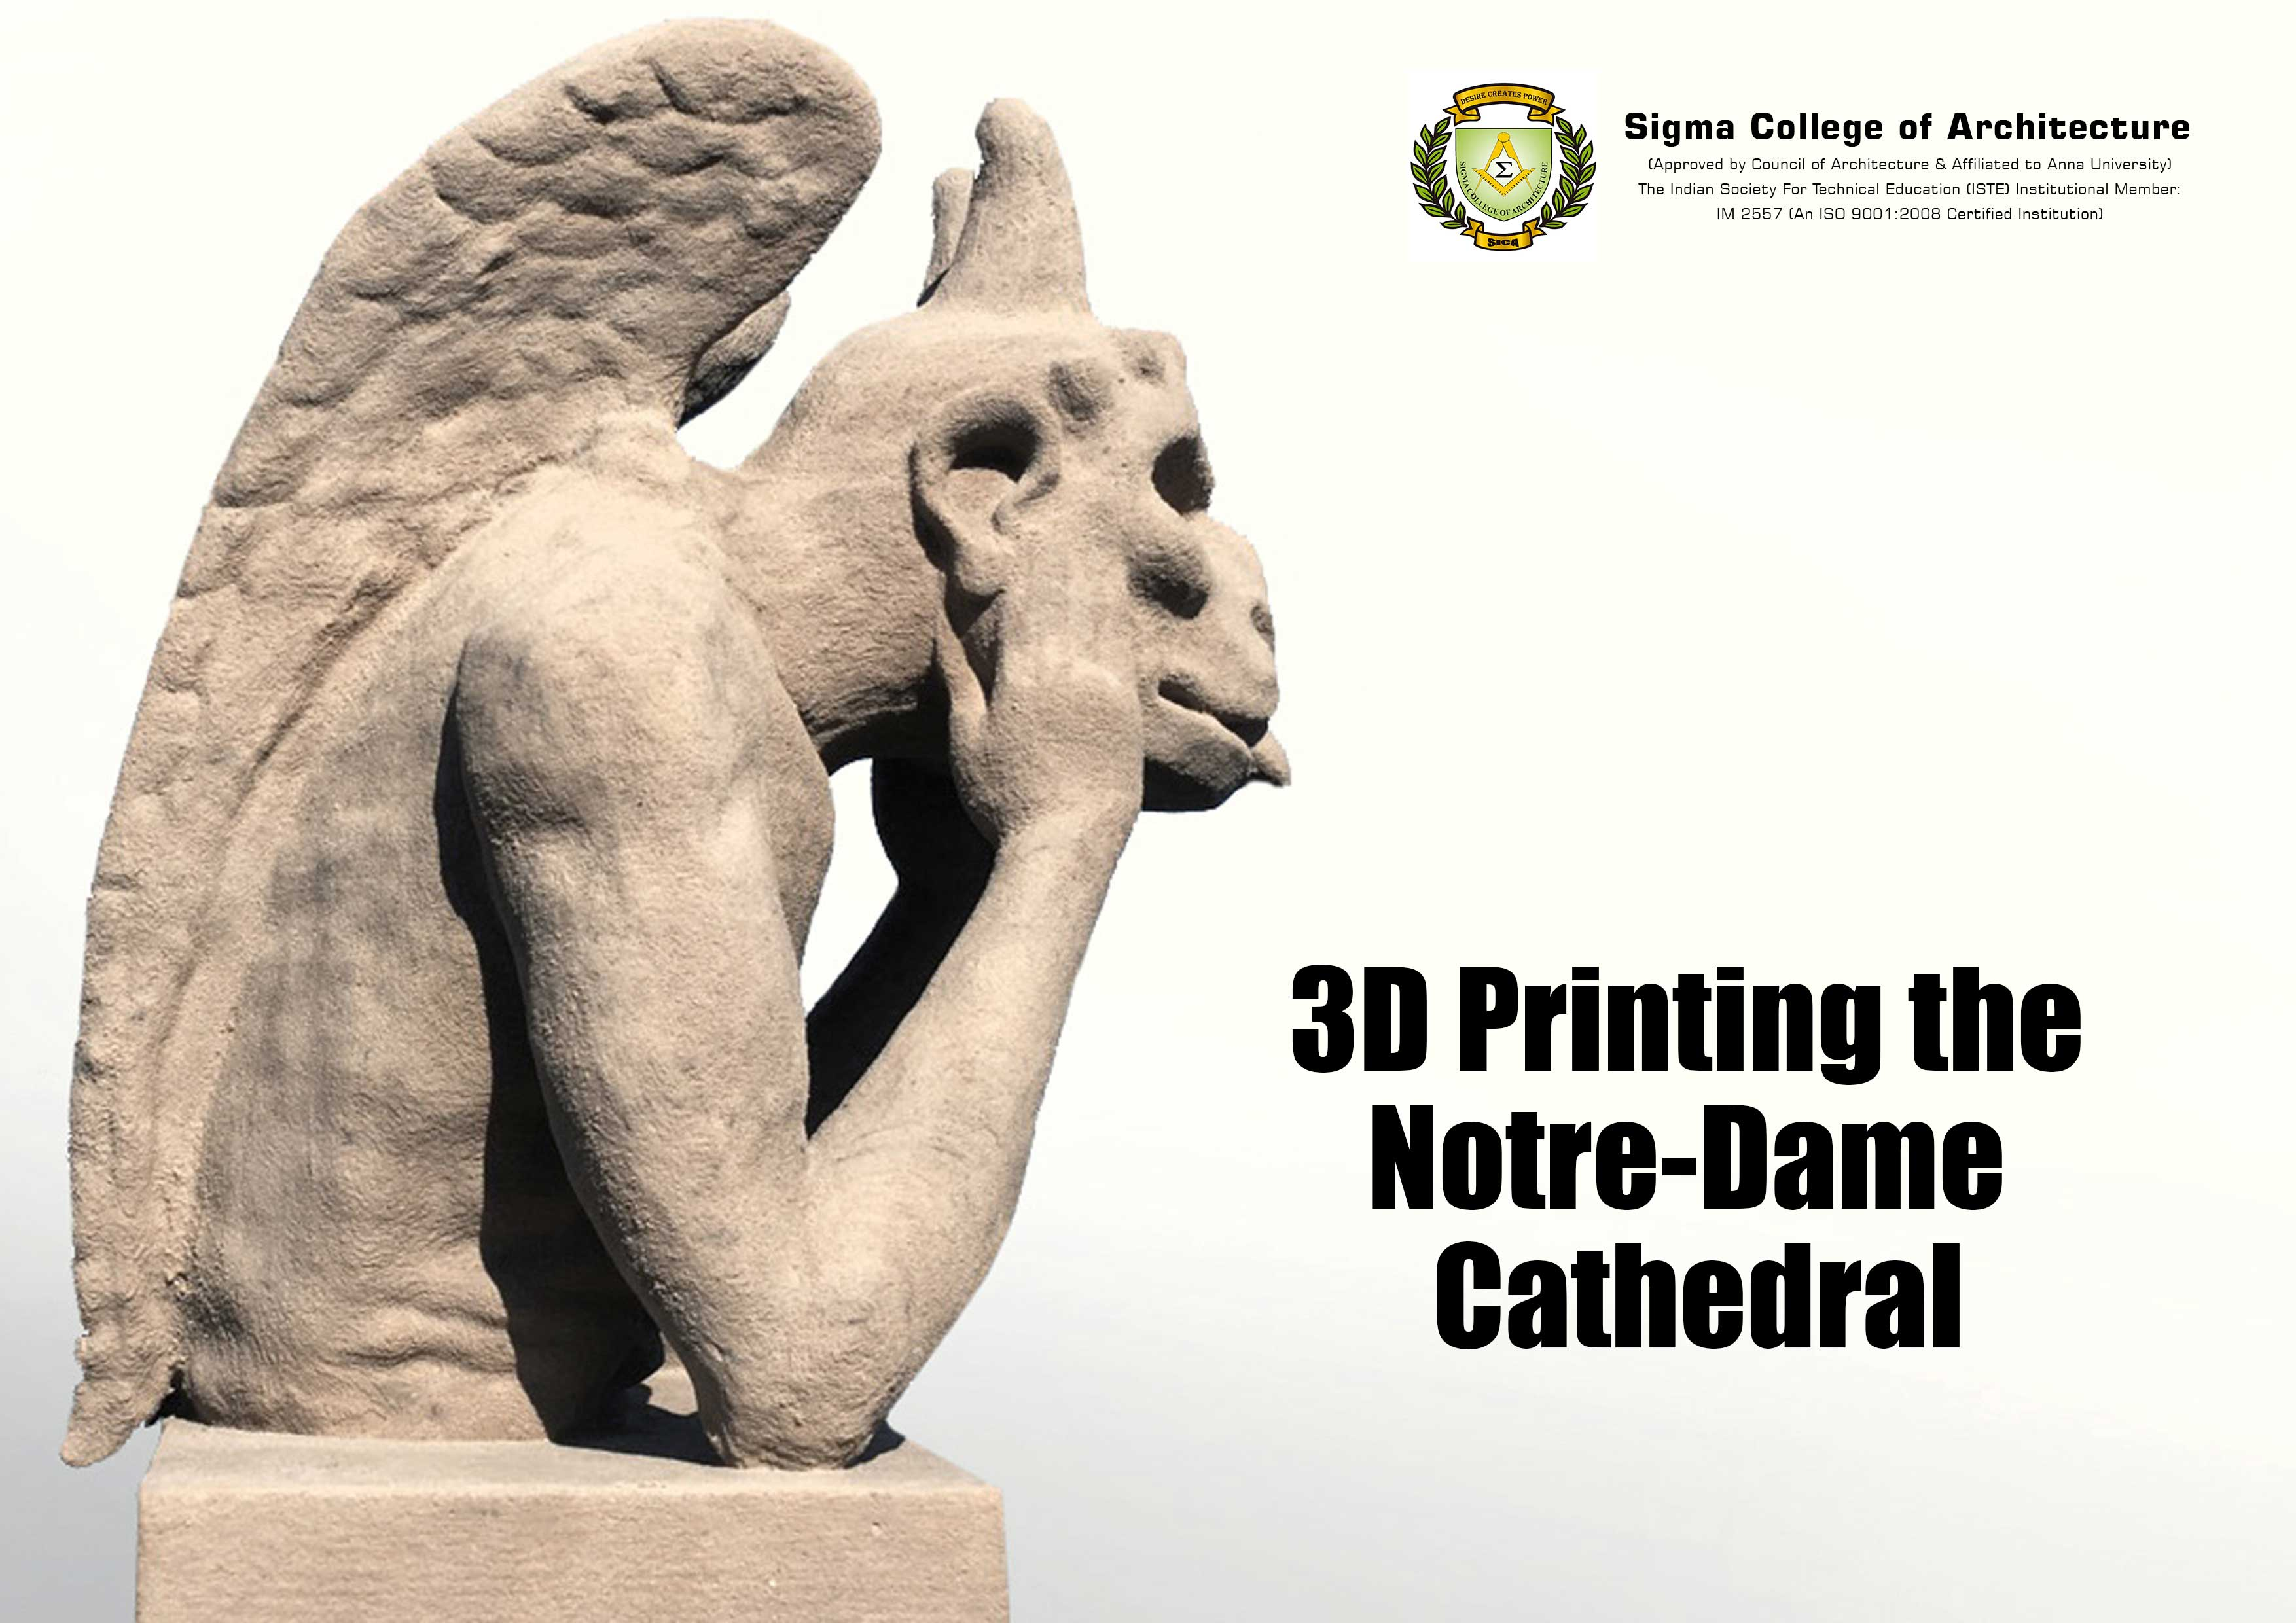 3D Printing the Notre-Dame Cathedral